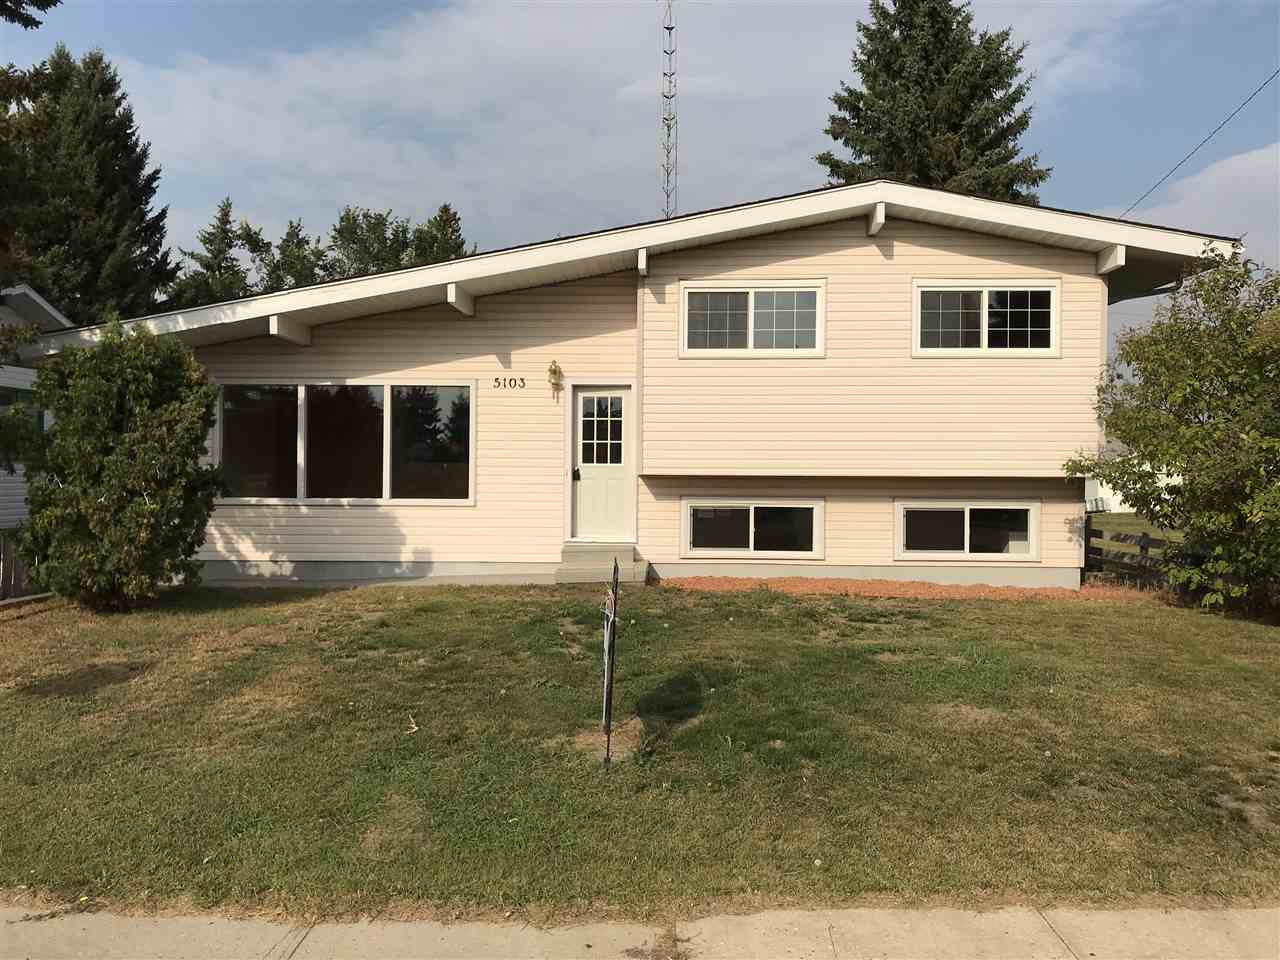 Beautiful 4 L Split fully renovated. 4 Bedrooms, 2 bathrooms, wood burning stove in the lower floor. Everything is new including windows, HWT and high efficiency furnace.